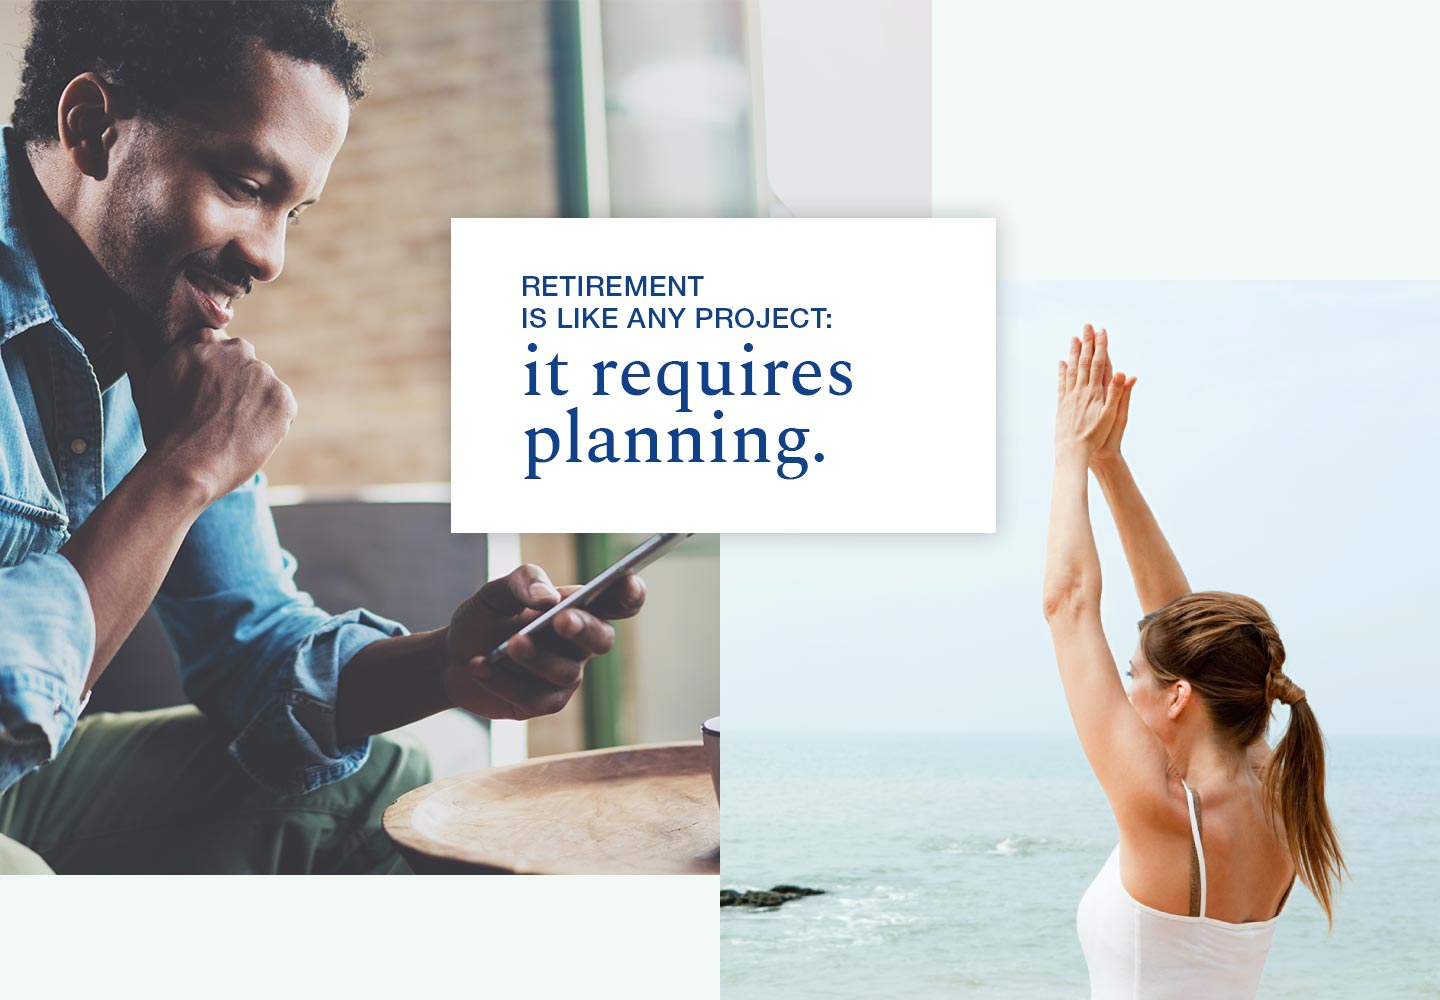 Retirement is like any project, it requires planning